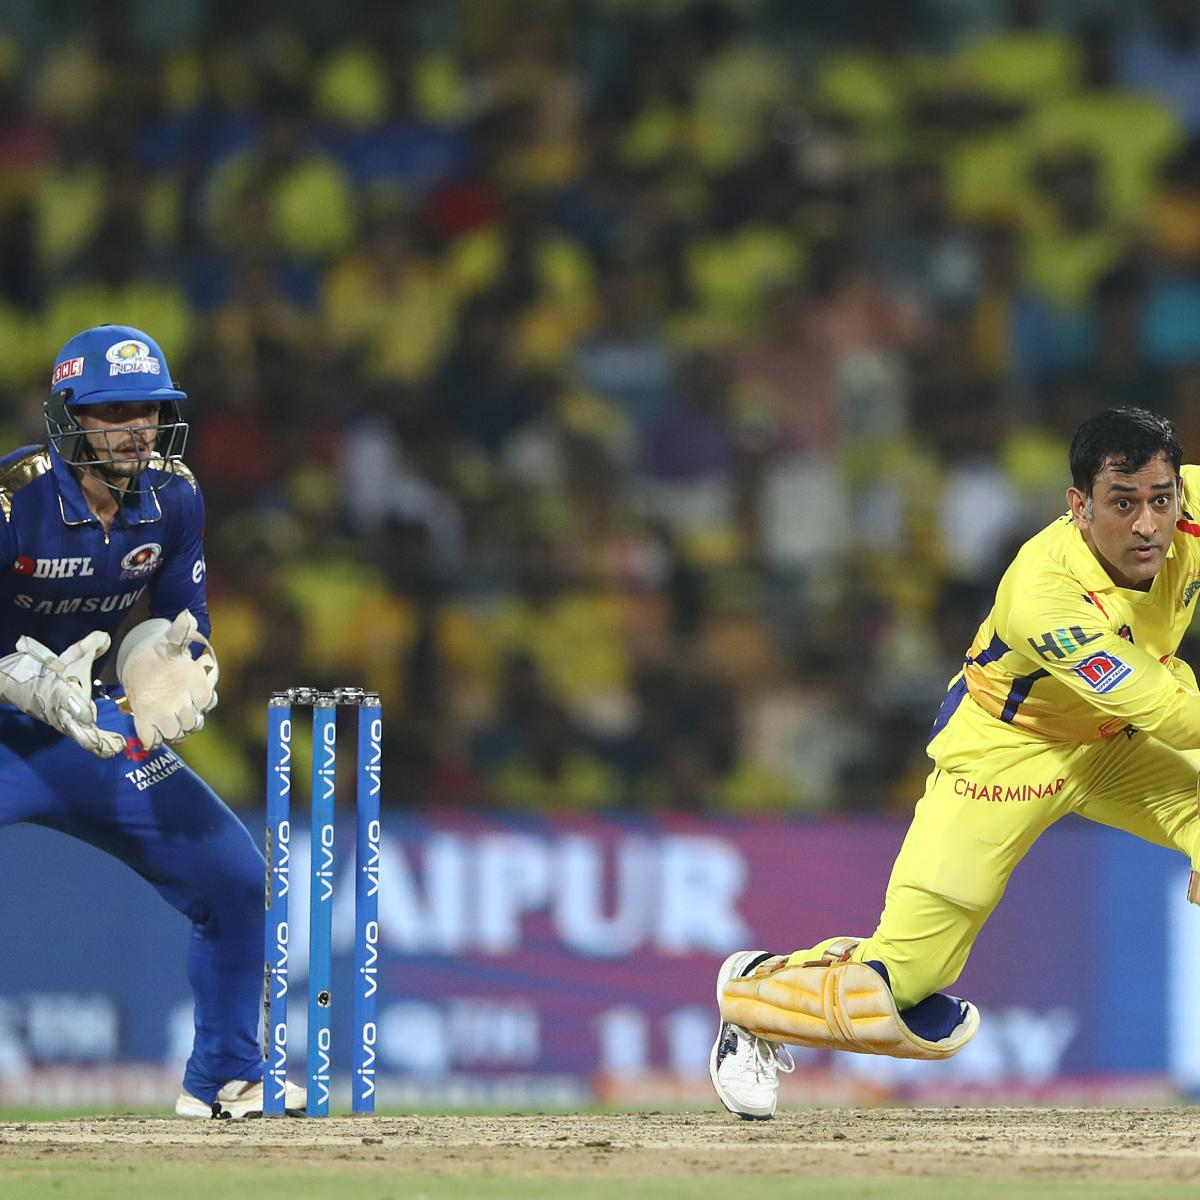 IPL Final 2019: TV Schedule, Live Stream And Predictions